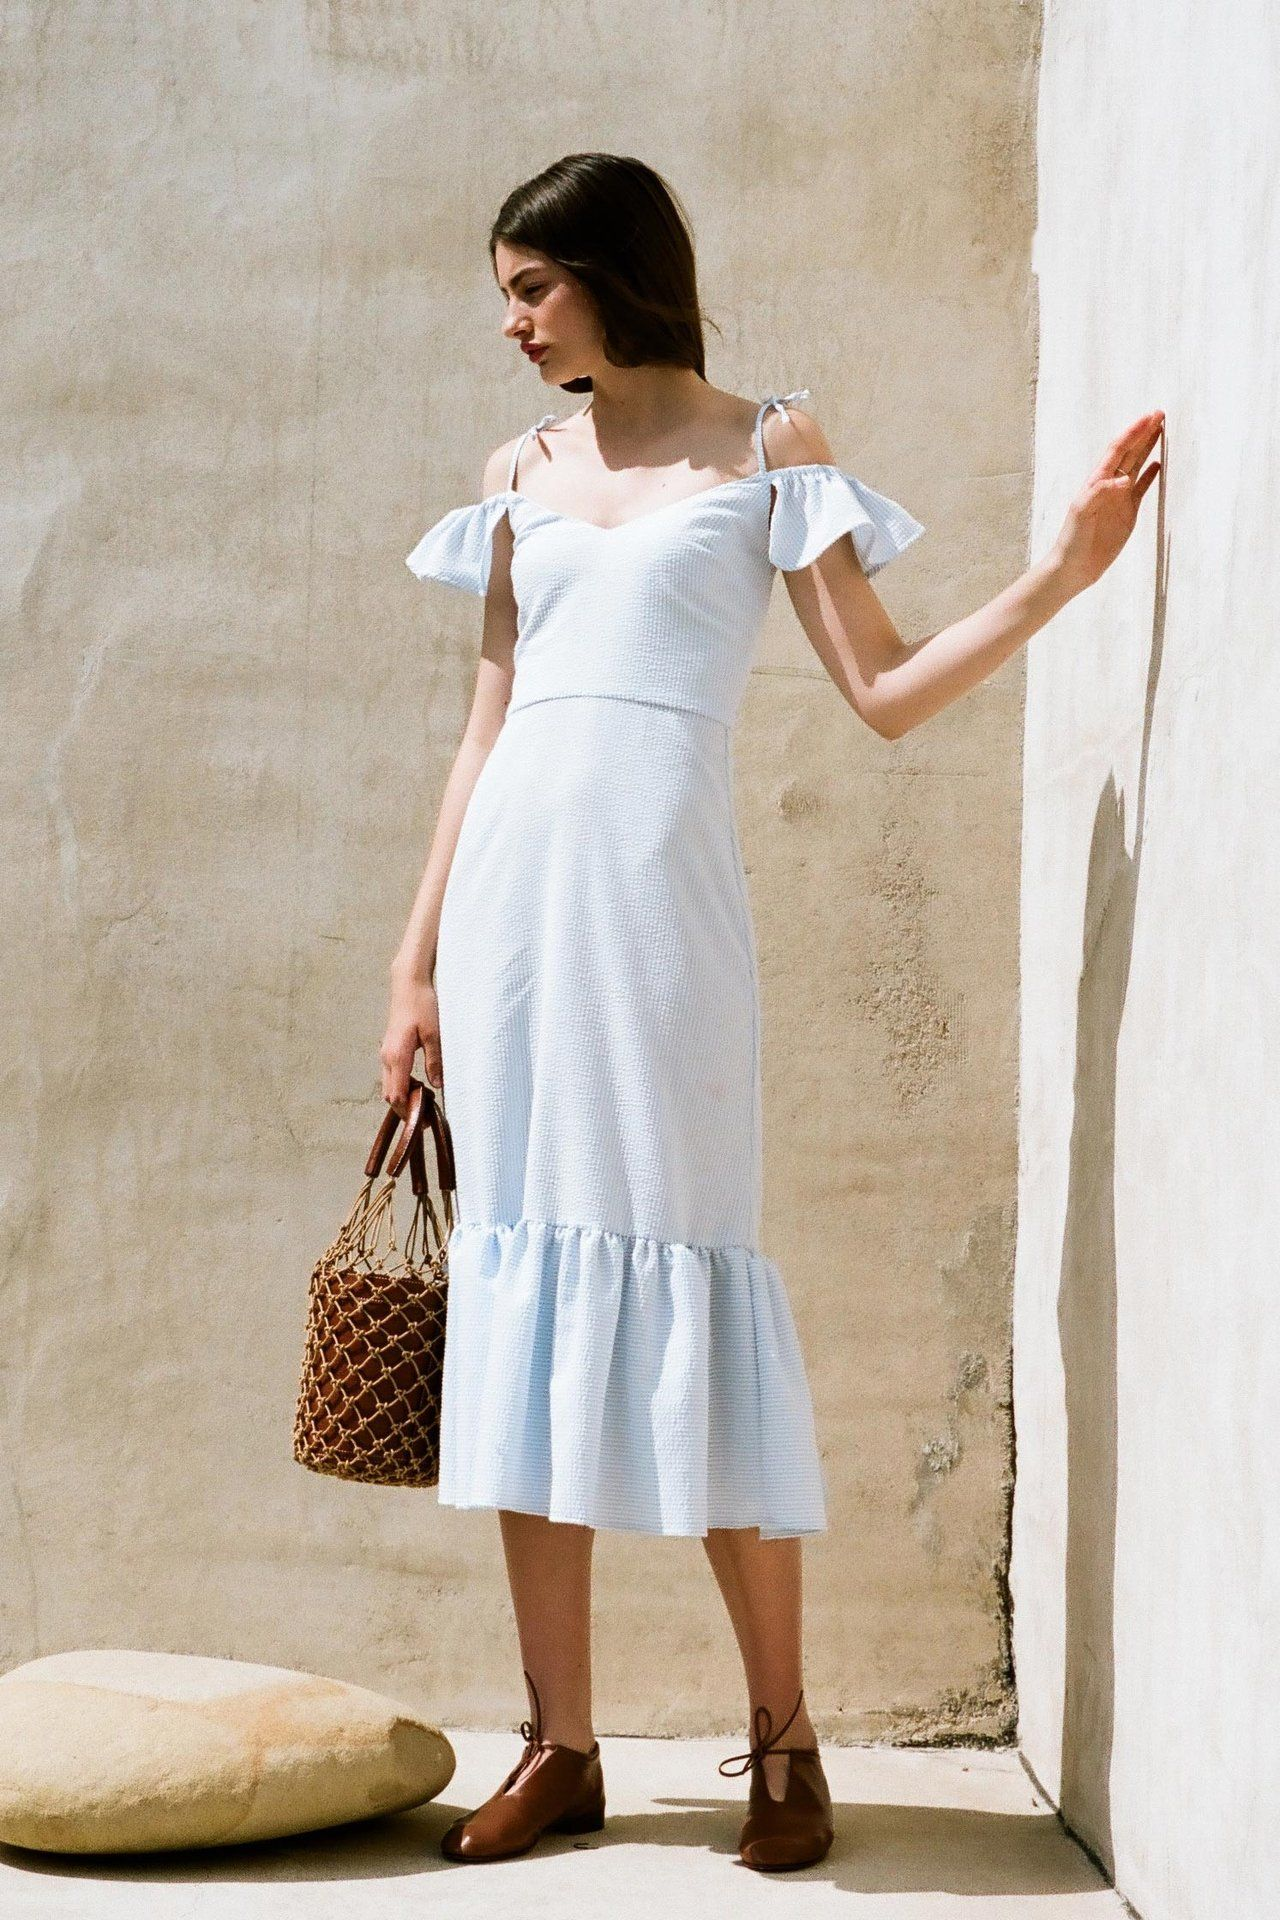 Staud spring bucket bags bag and seersucker dress